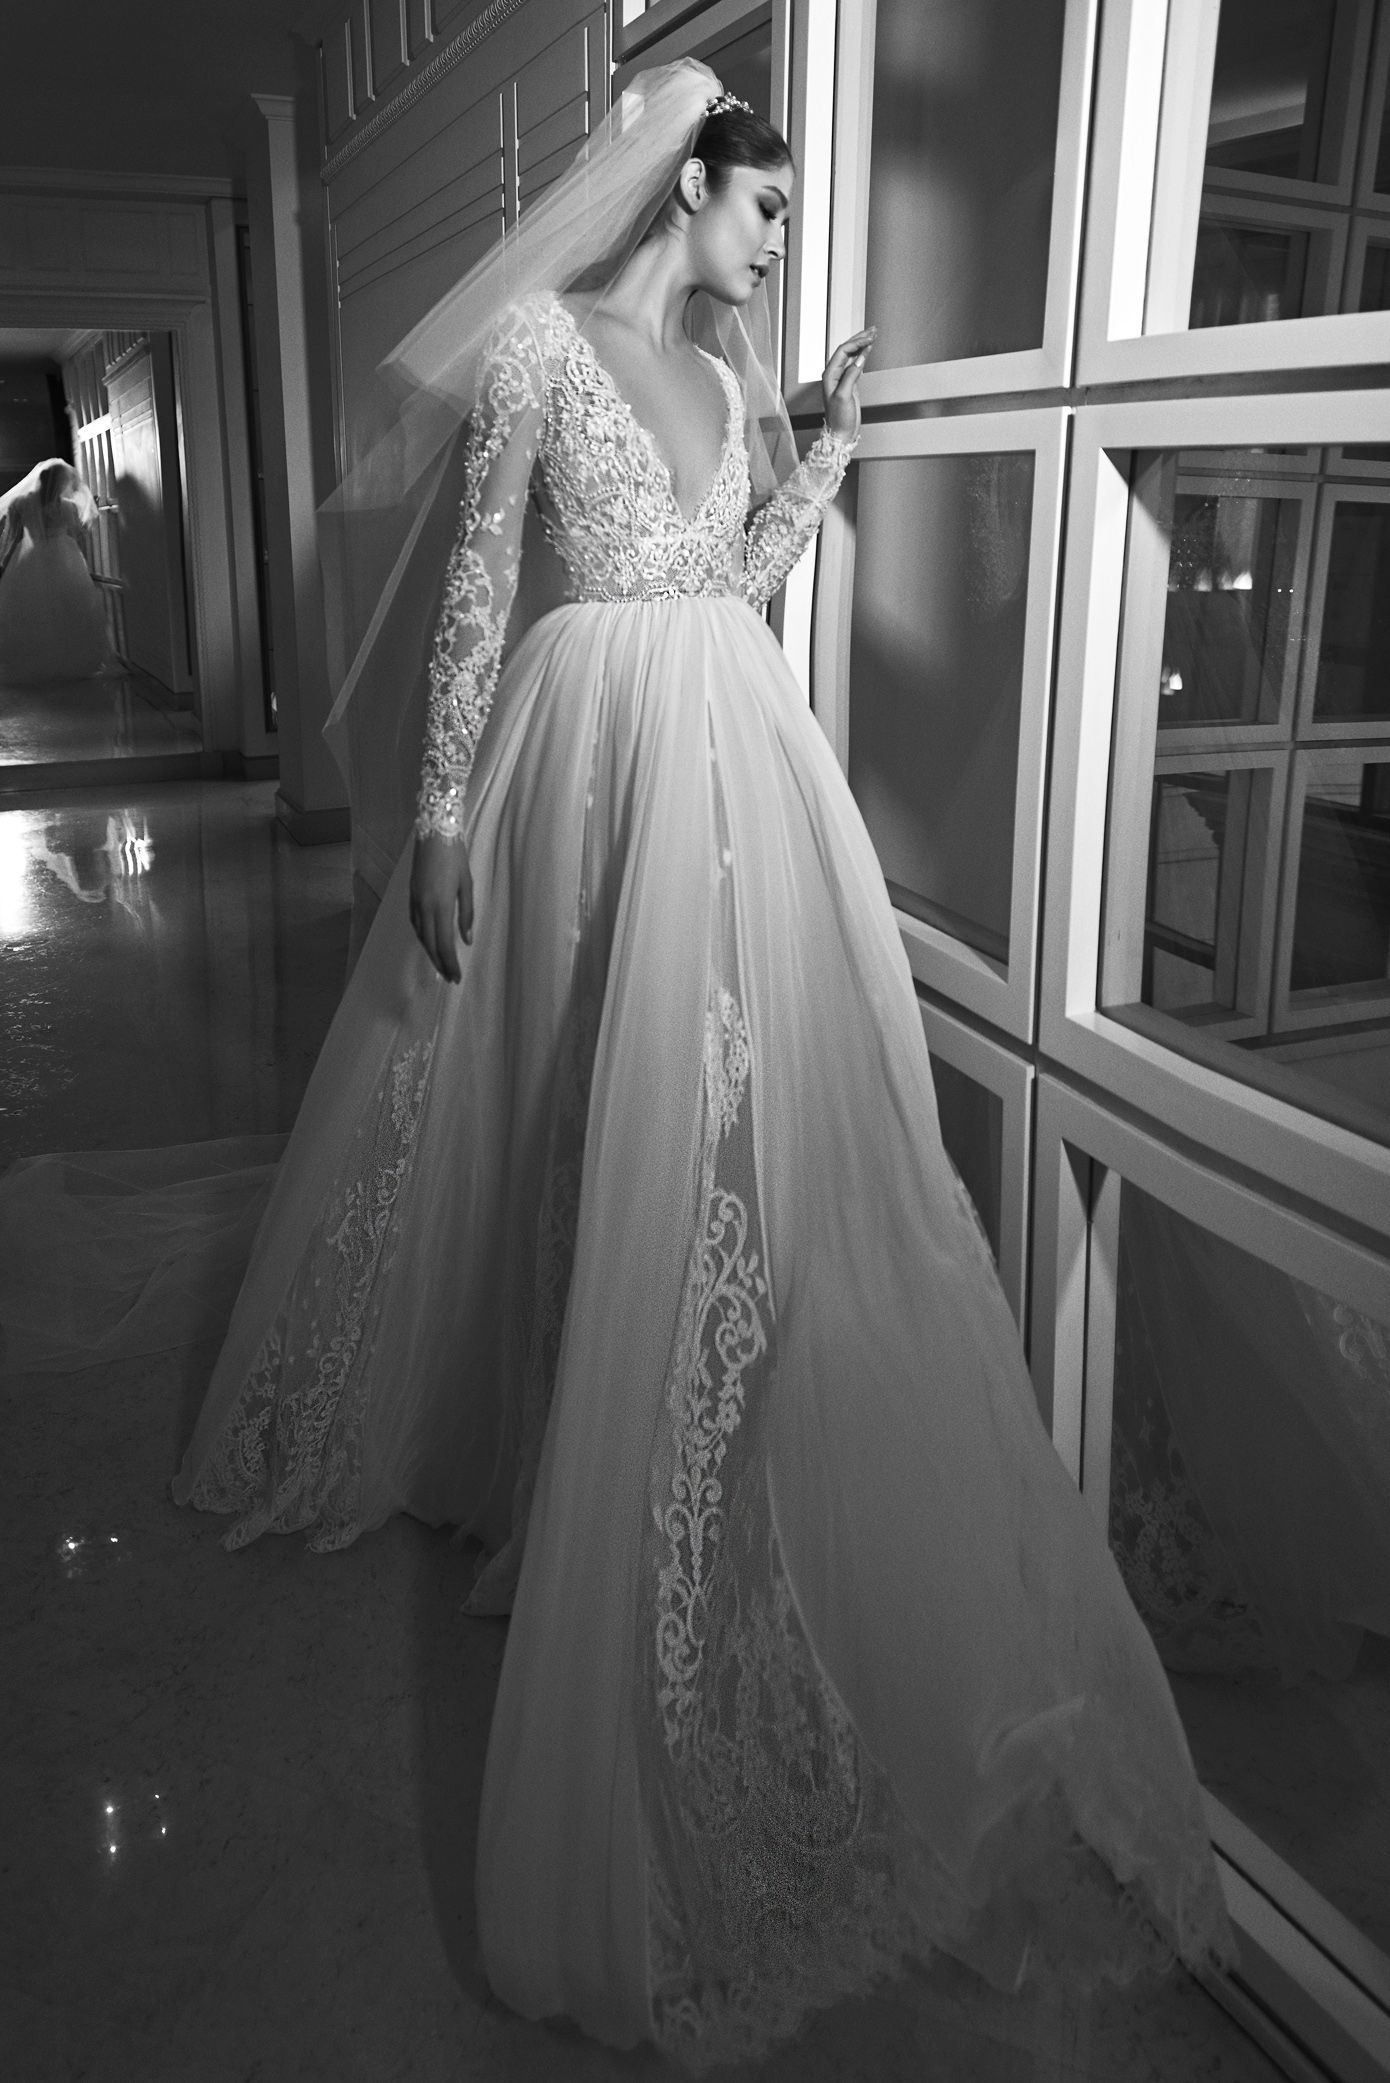 81eaca2b052 Wedding Dresses by Zuhair Murad (Vanda)